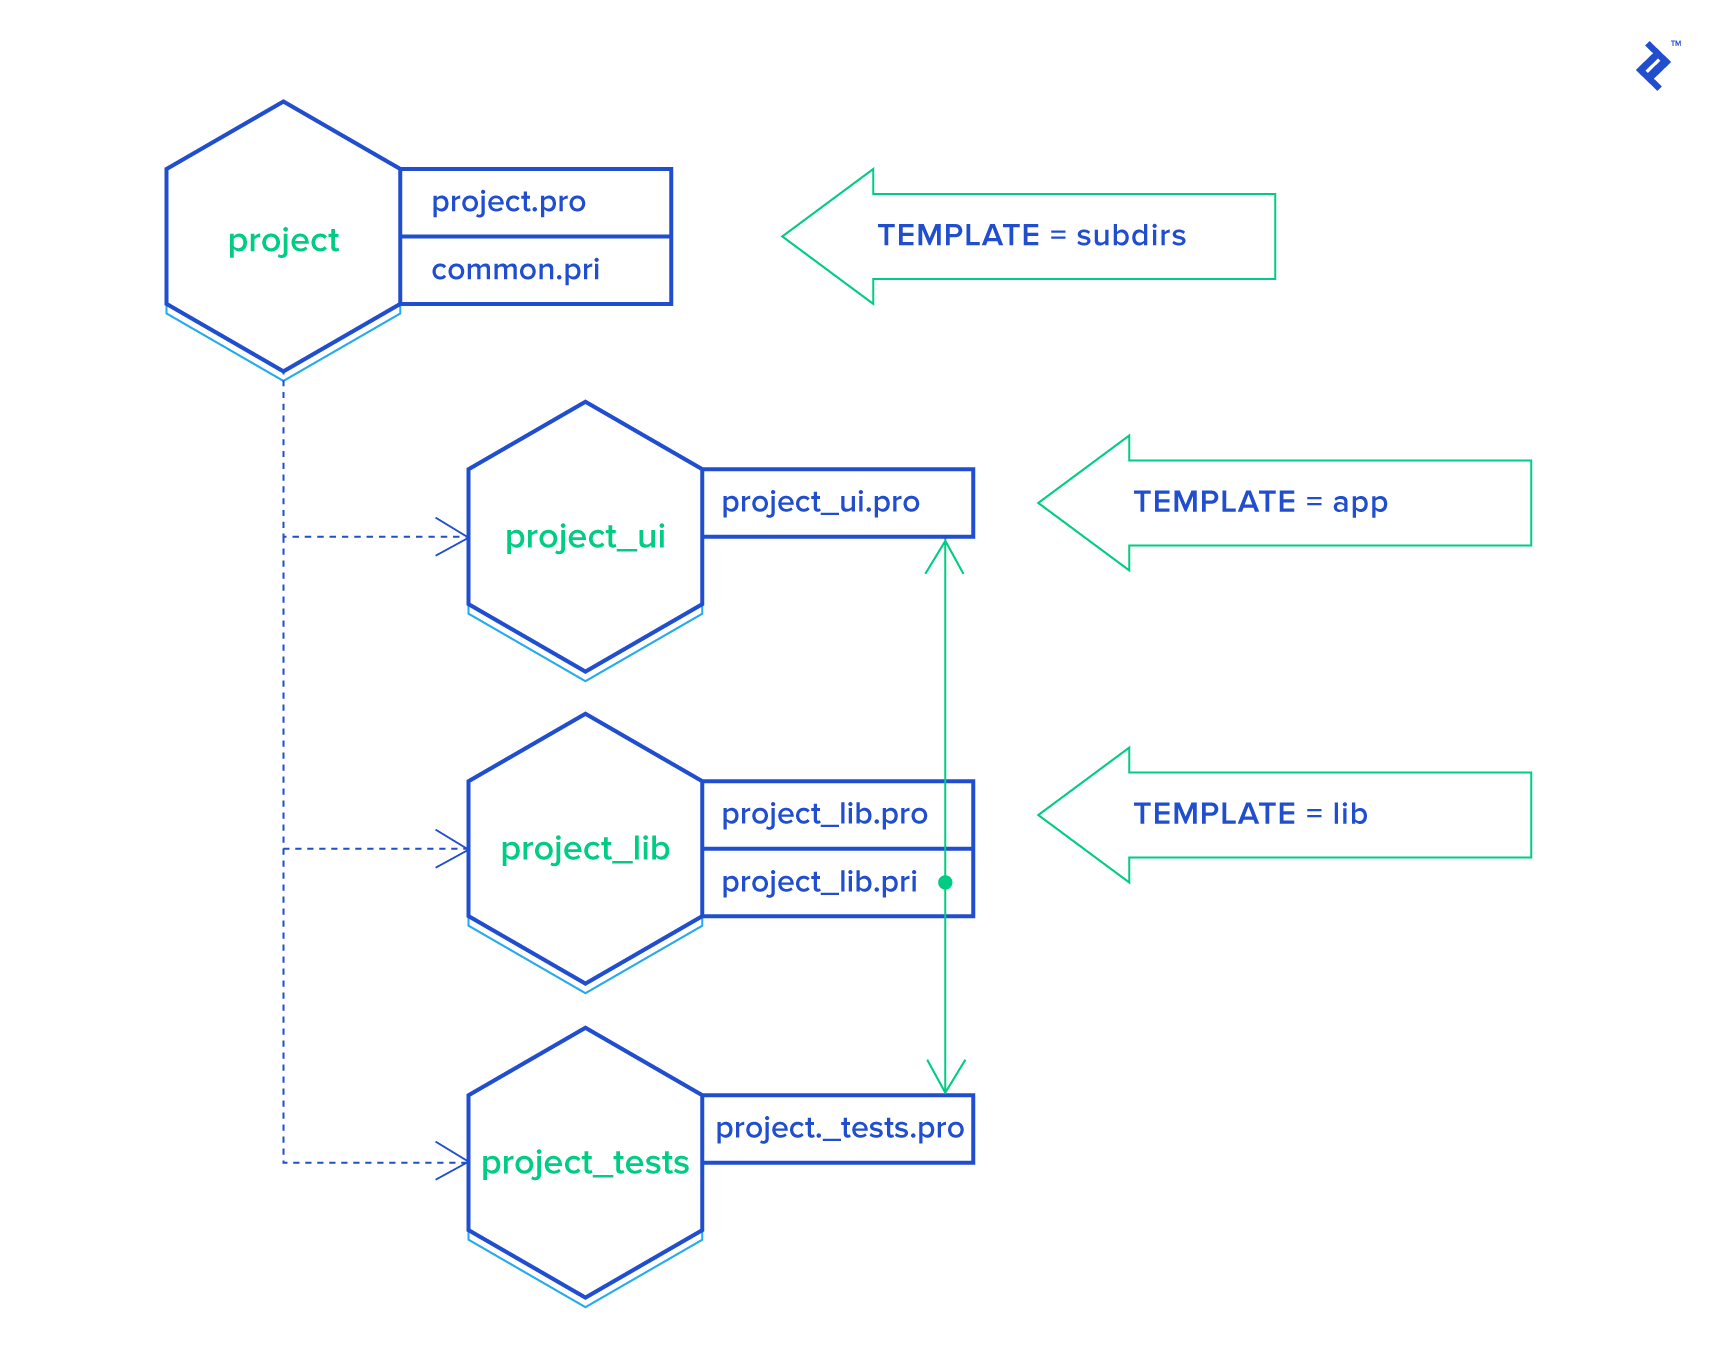 The project directory structure